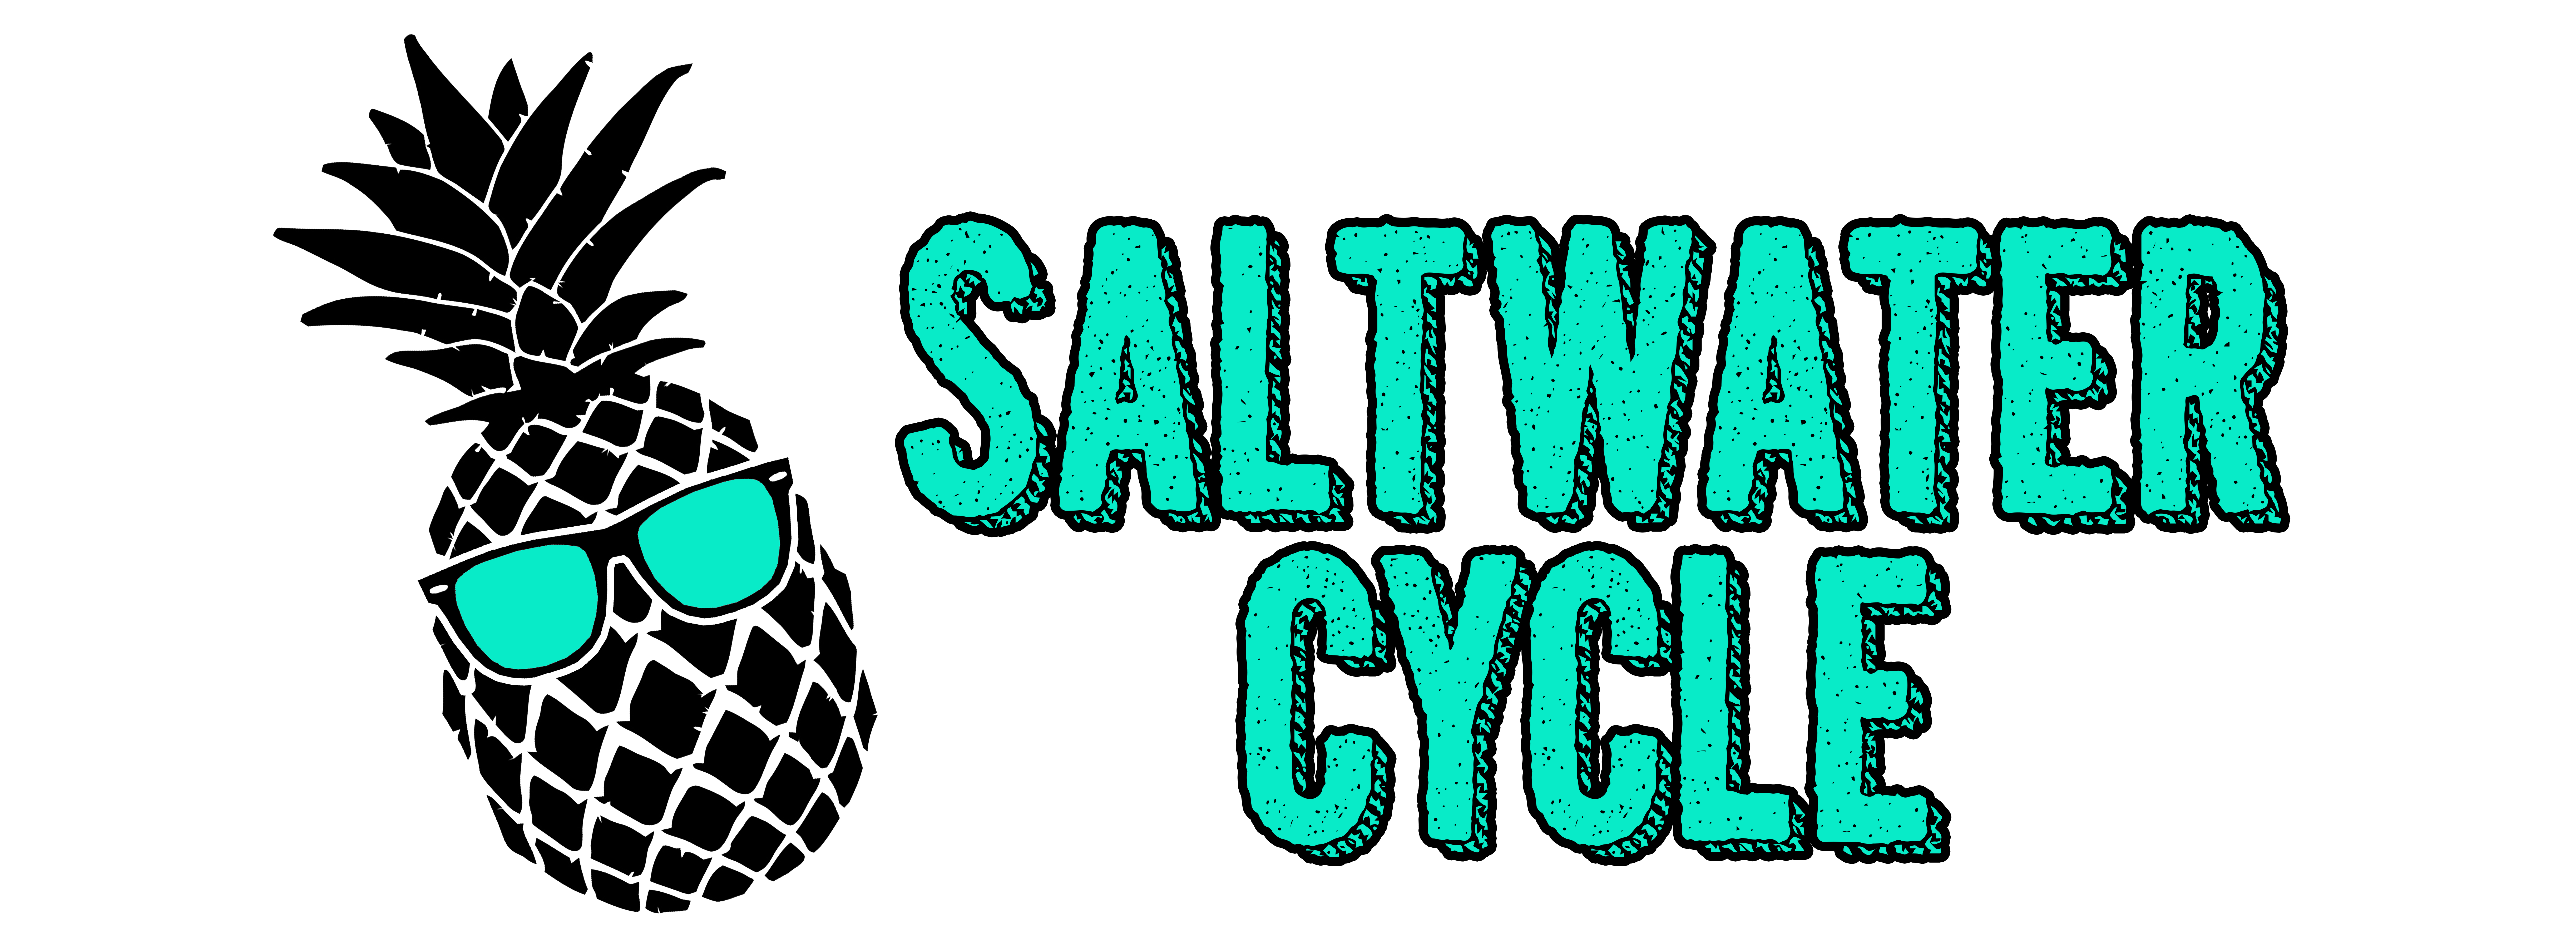 Saltwater Cycle reviews | Other at 33 Lockwood Dr - Charleston SC